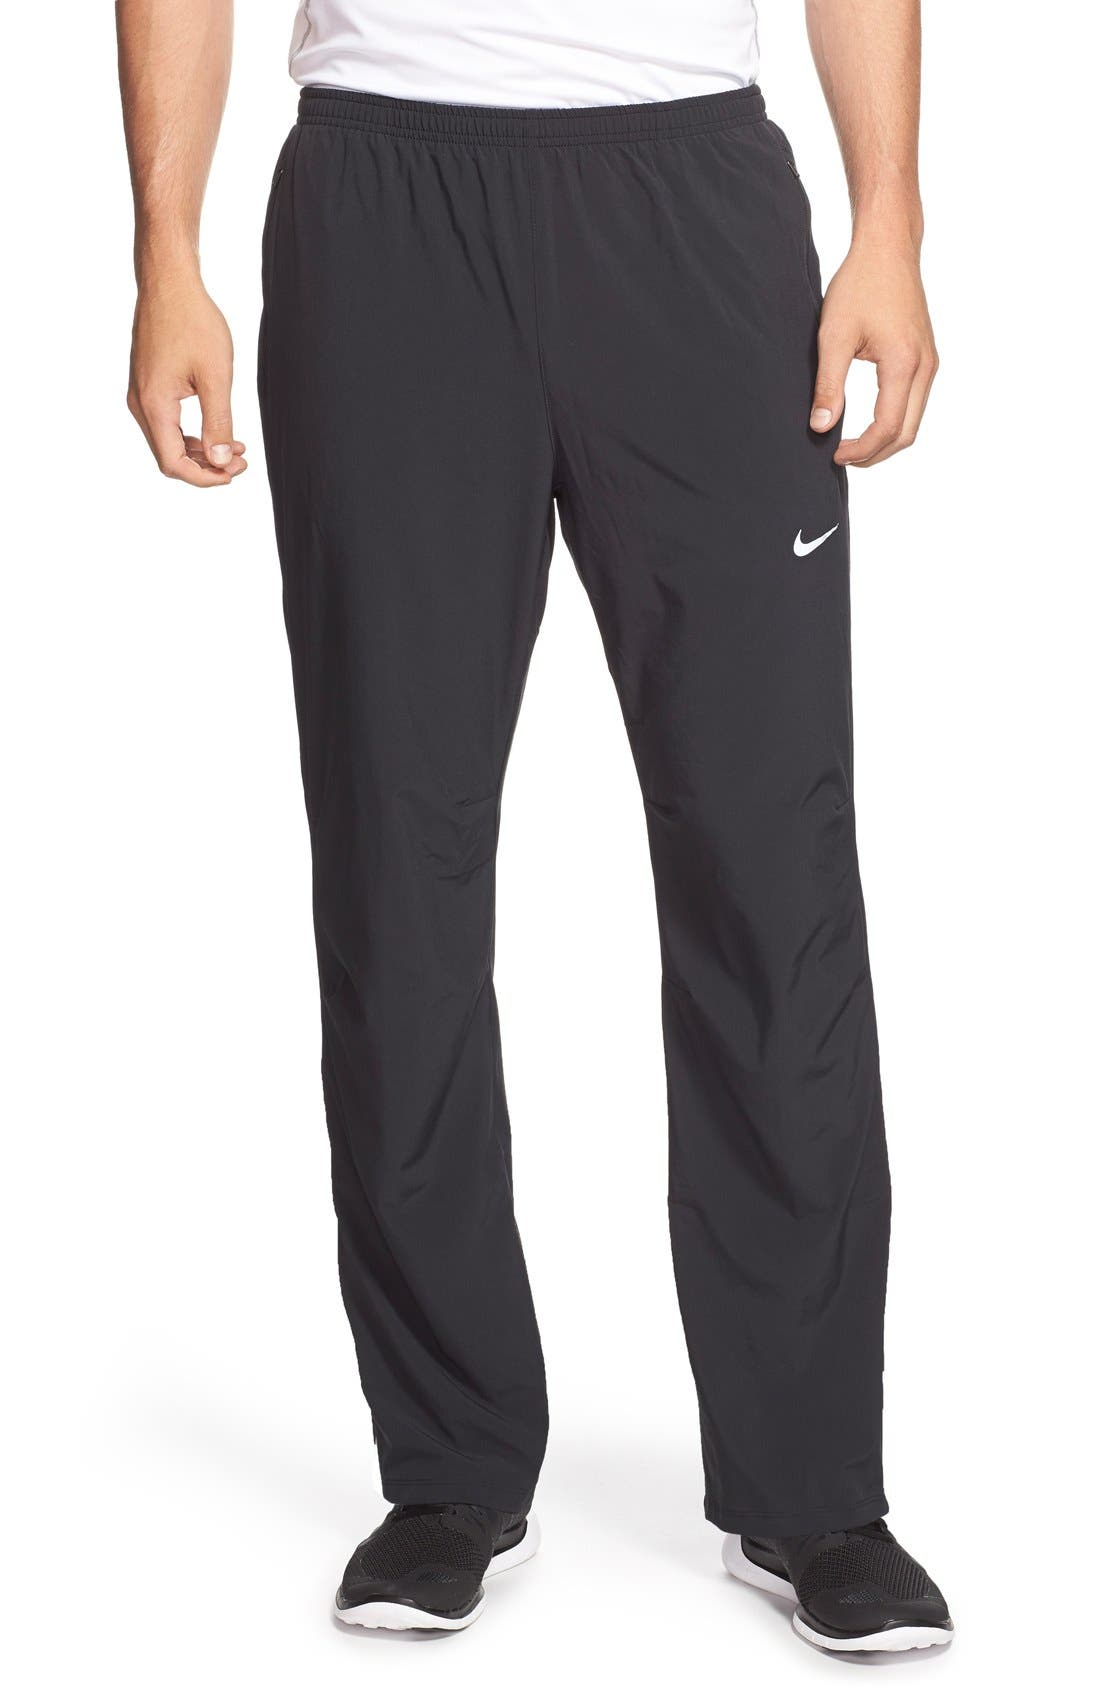 Alternate Image 1 Selected - Nike Dri-FIT Woven Pants